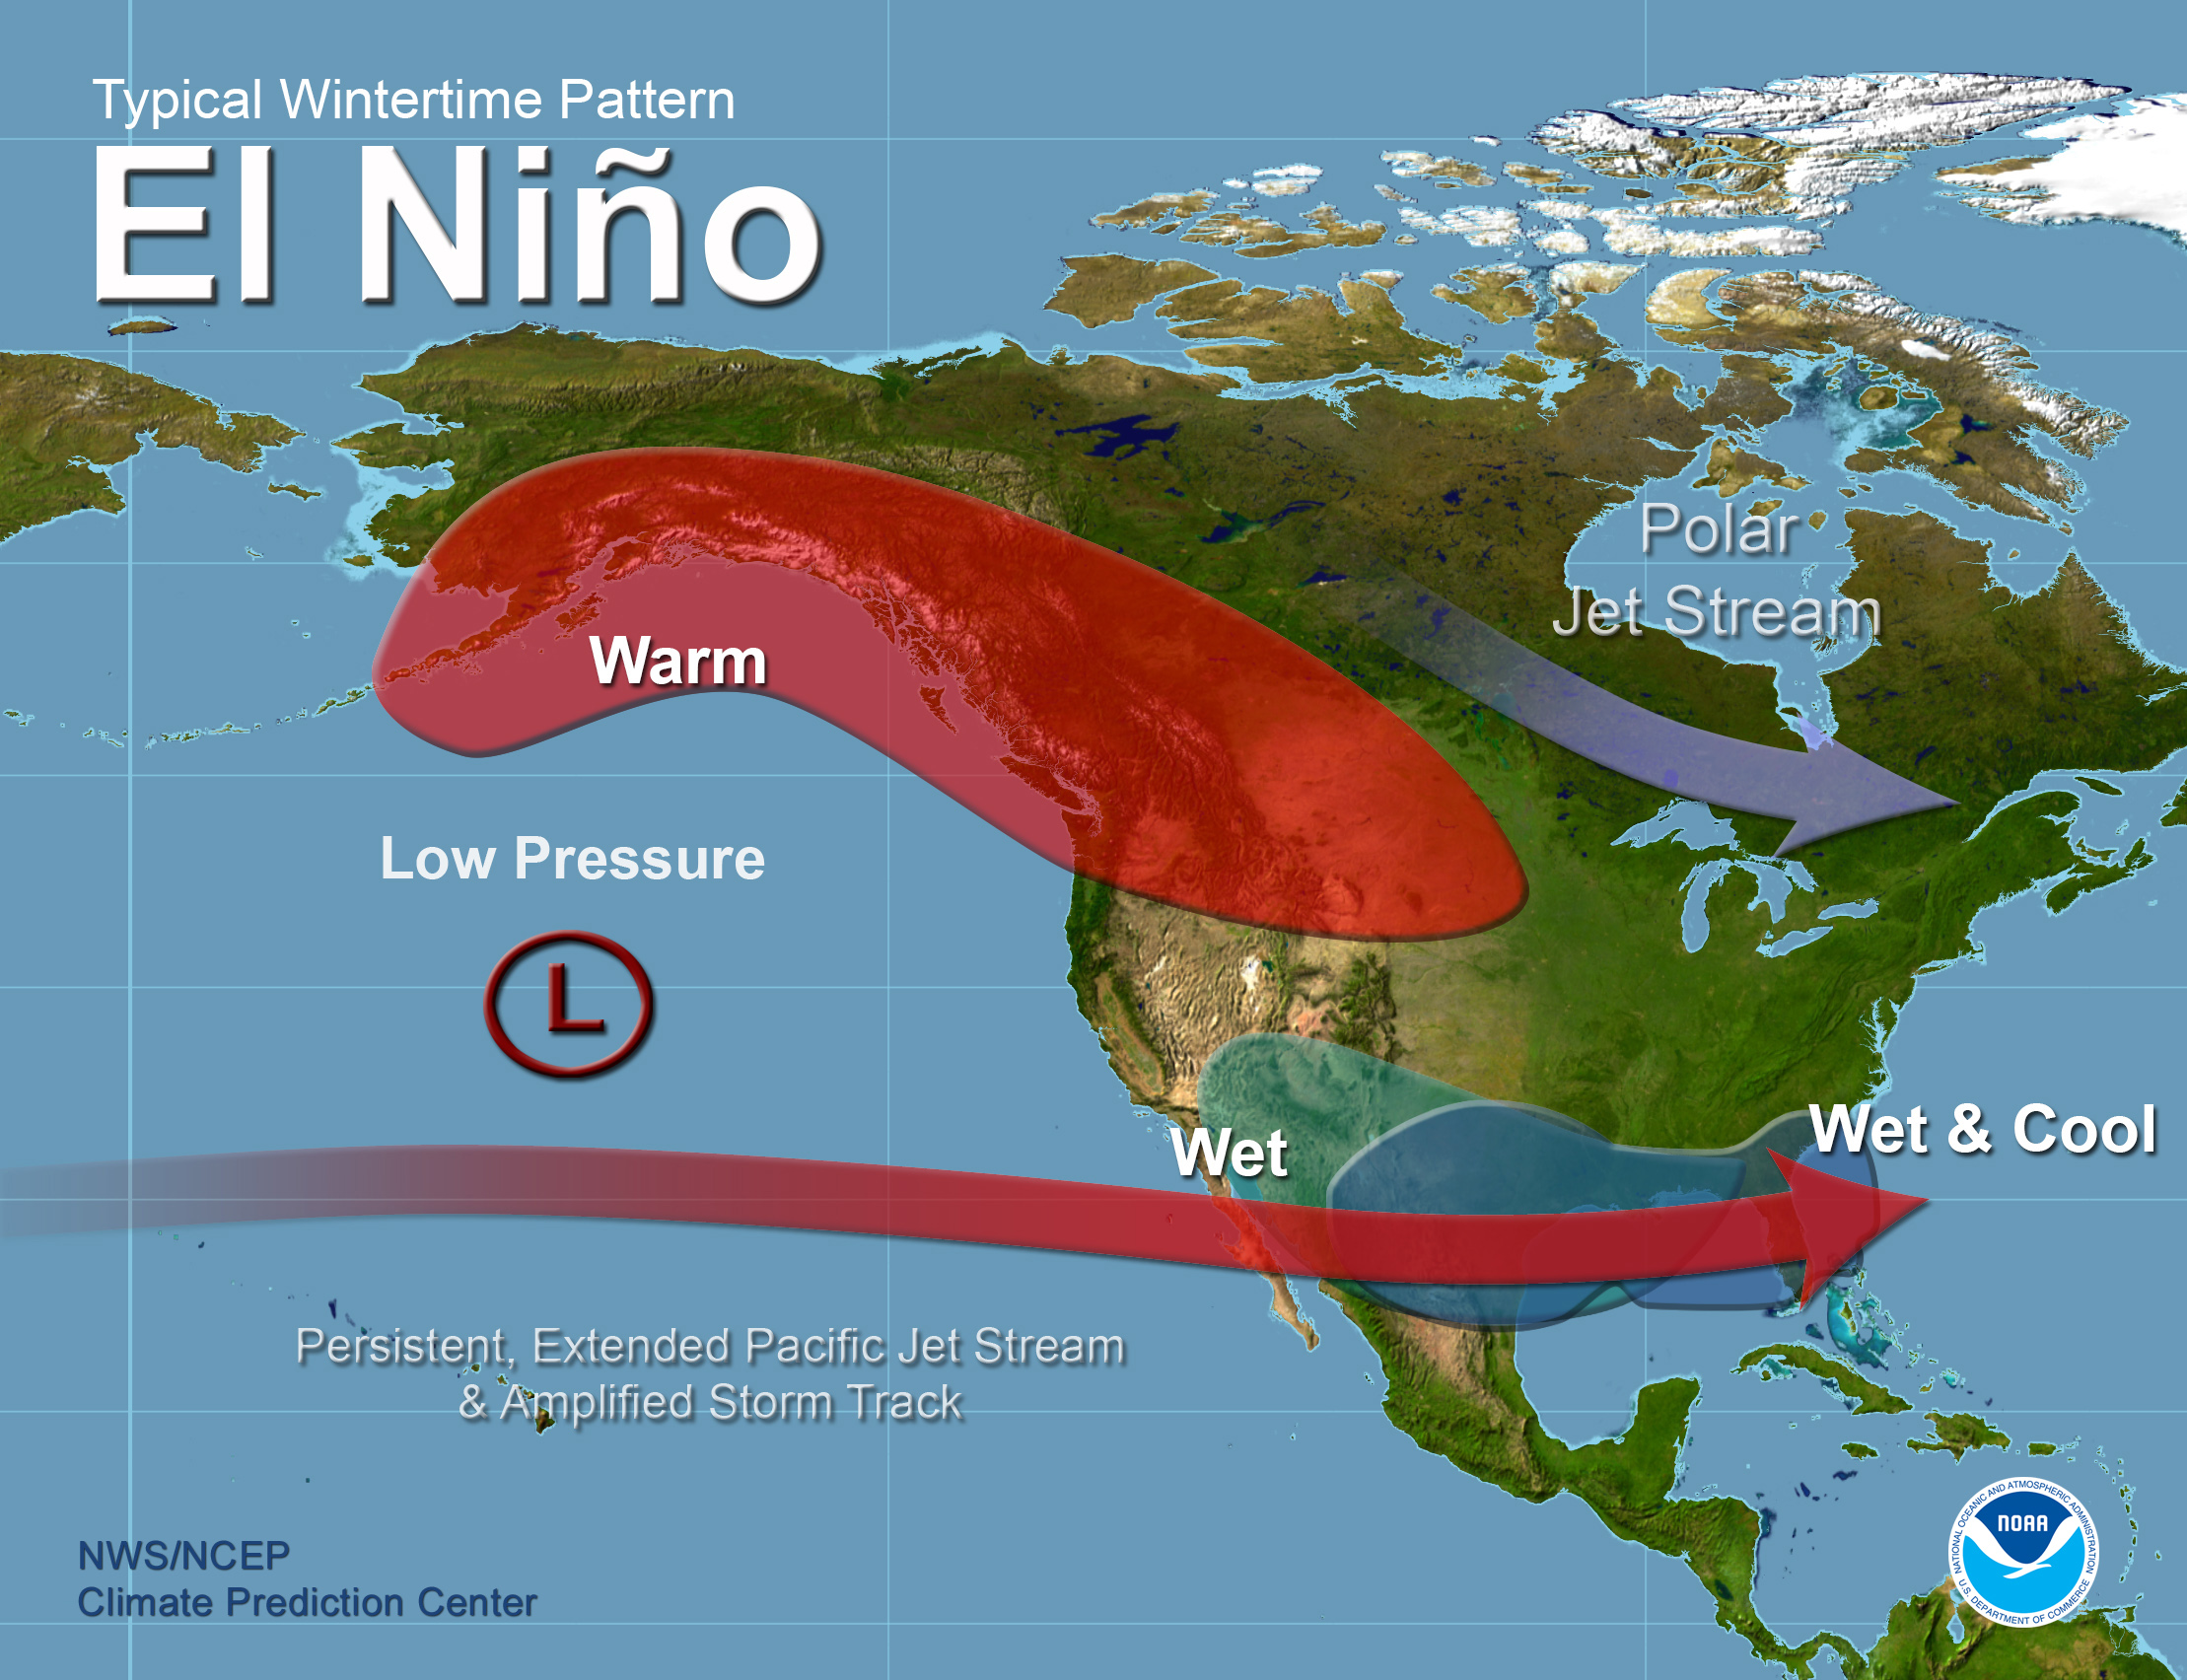 la ni ntilde a faqs el nino theme page a comprehensive resource elnino jet wintertime pattern